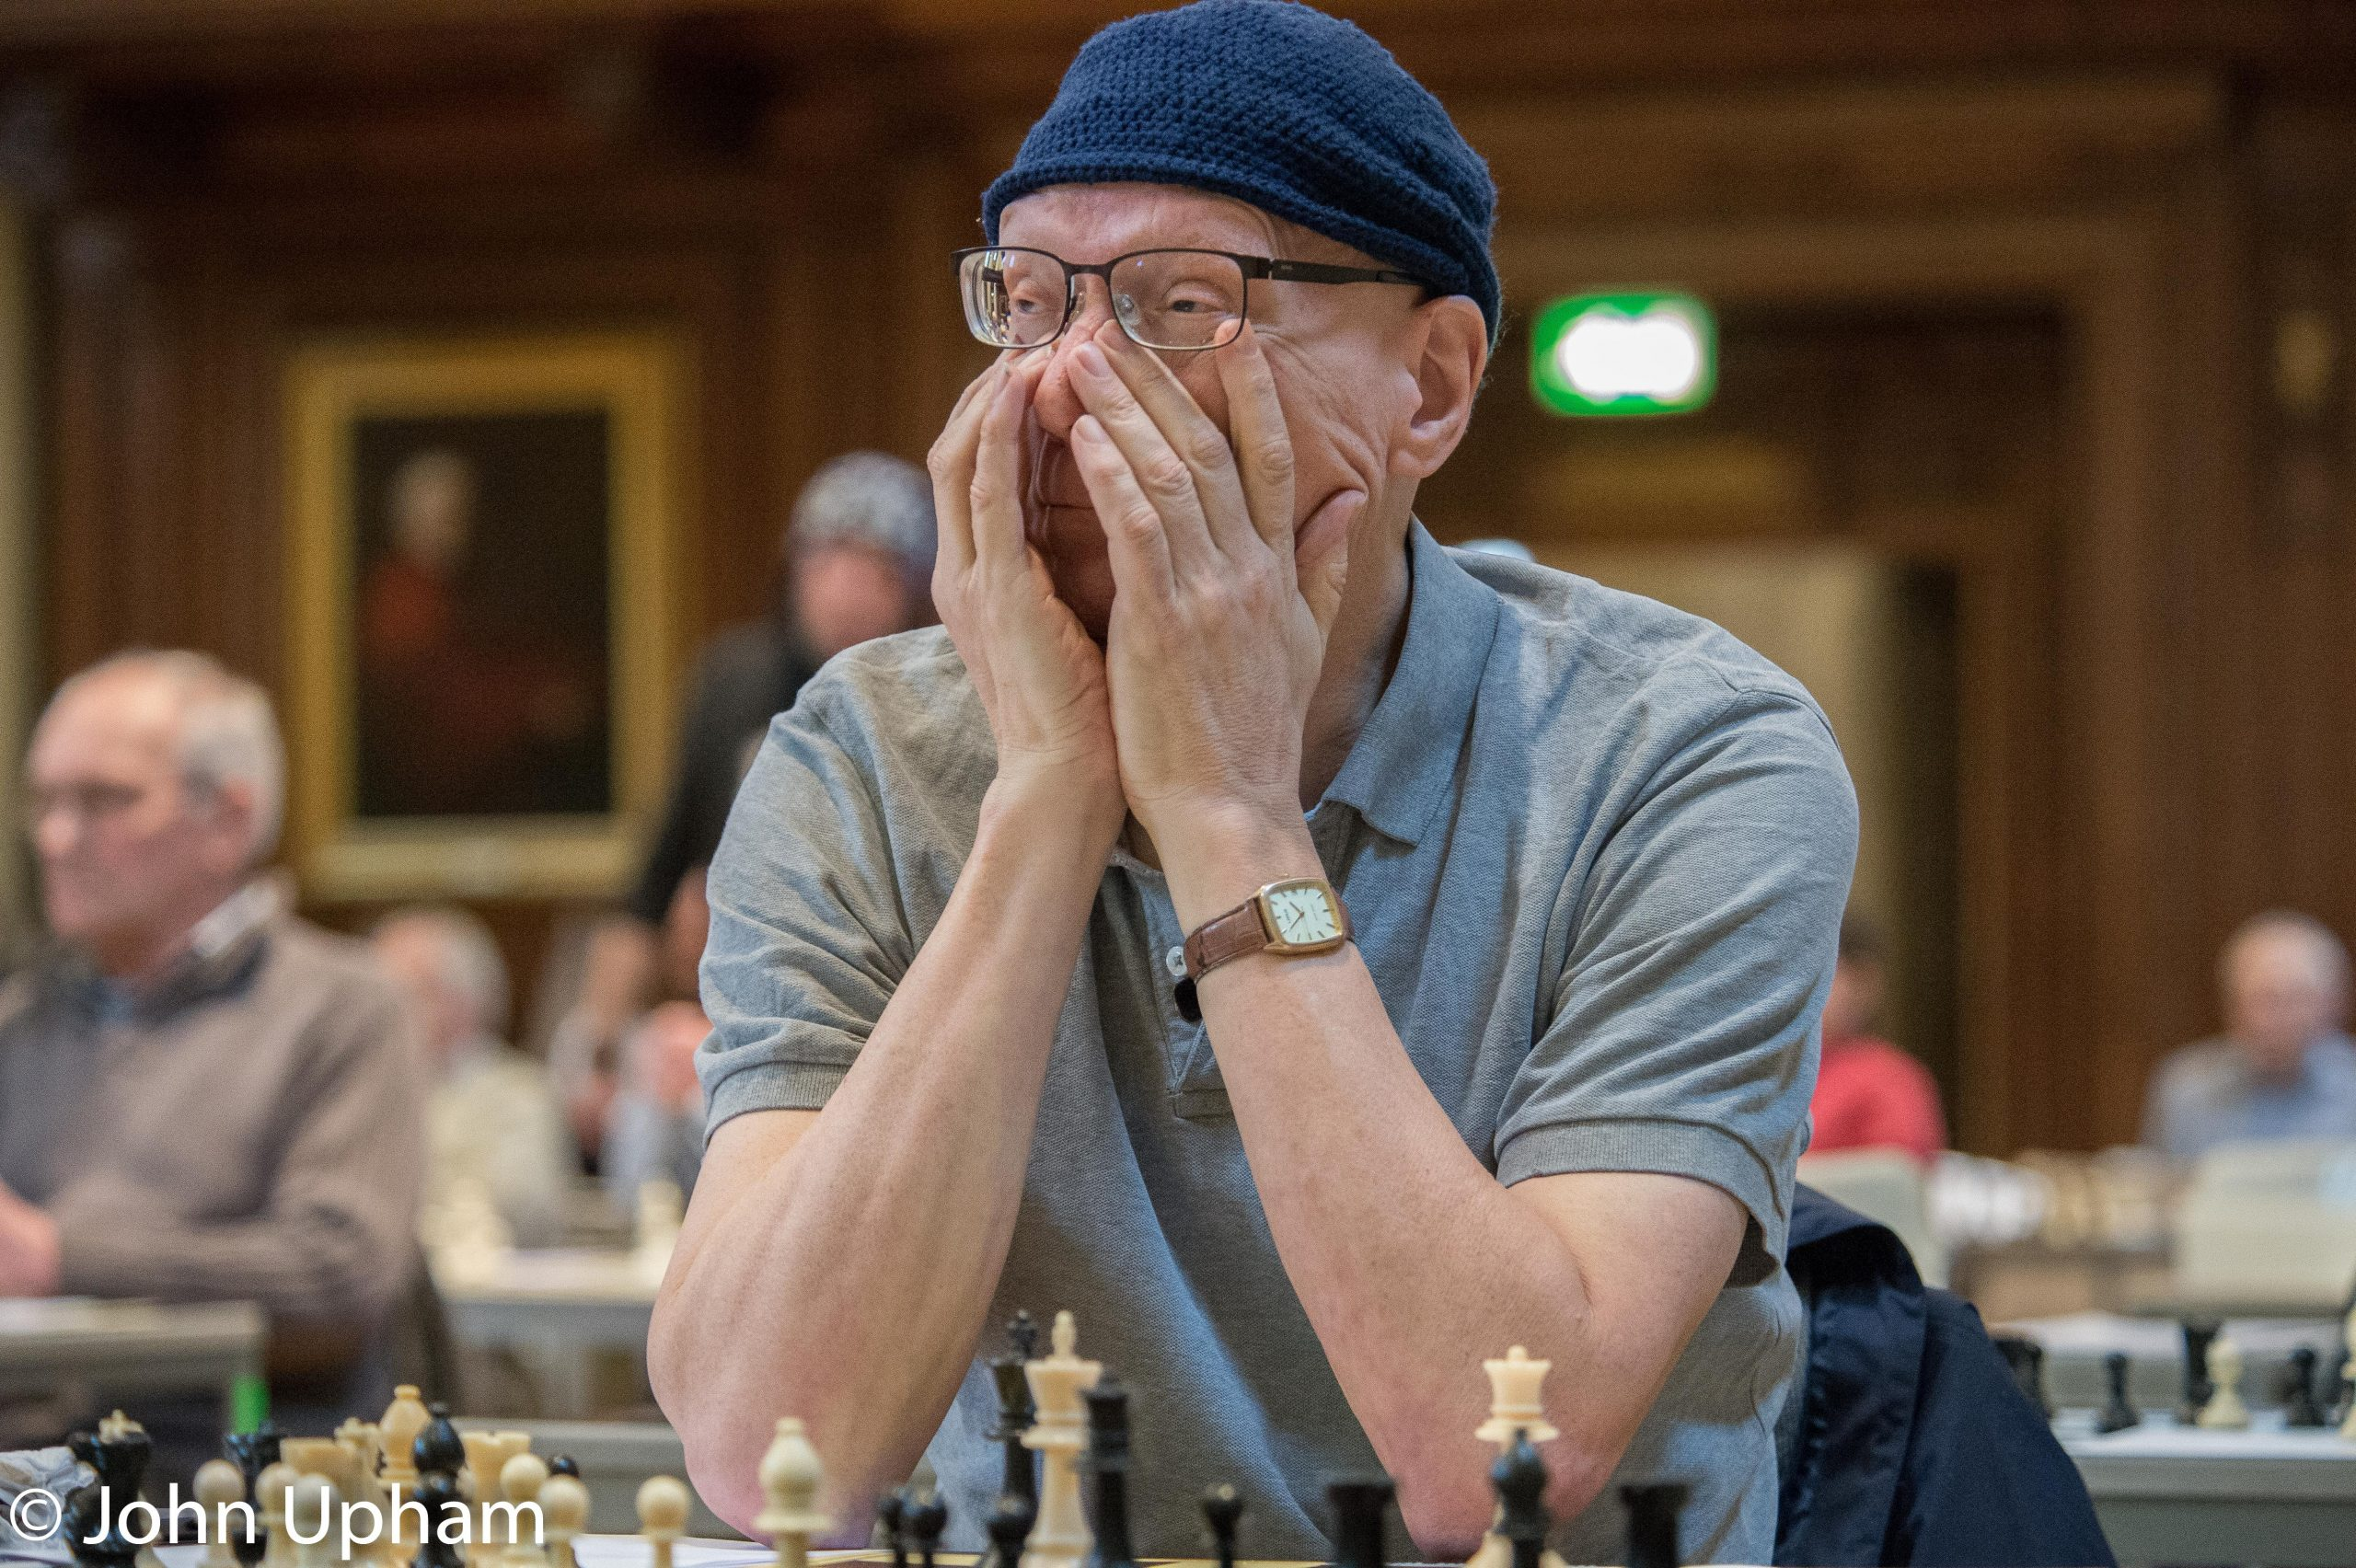 GM Jonathan Mestel at the 2016 Winton Capital British Solving Championships at Eton College, Courtesy of John Upham Photography